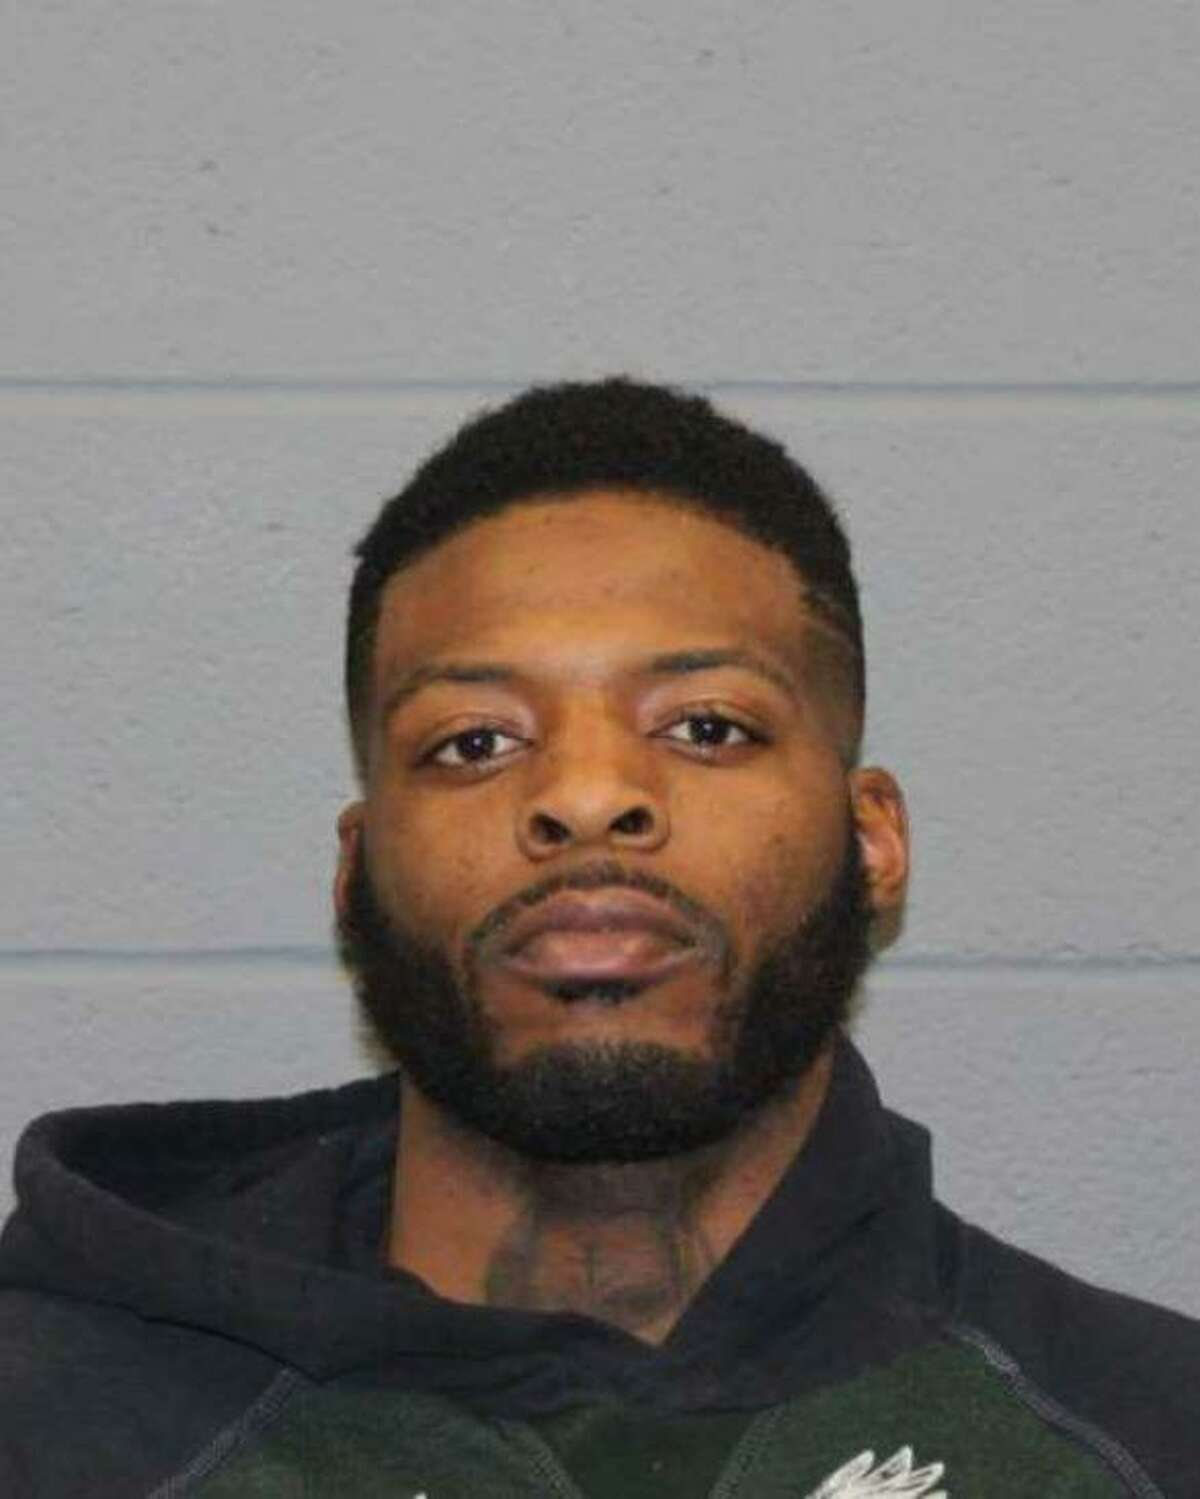 Police are still looking for Reginald Miles, 31, in connection with a homicide that occurred Waterbury in late July.